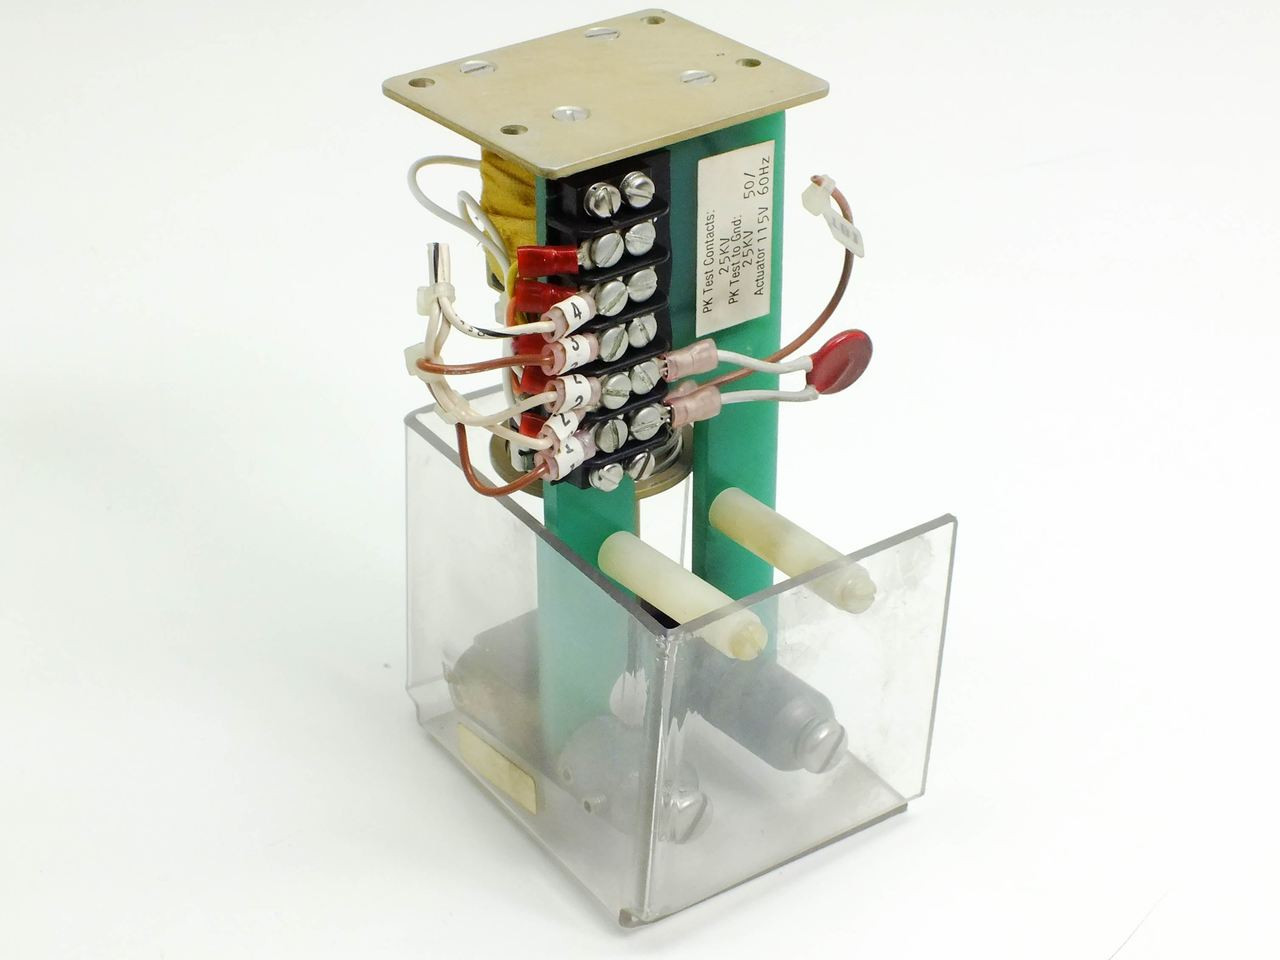 Ross Engineering E25-NC-25-1-15 High Voltage Relay/Contact, PK Test  Contacts 25k,